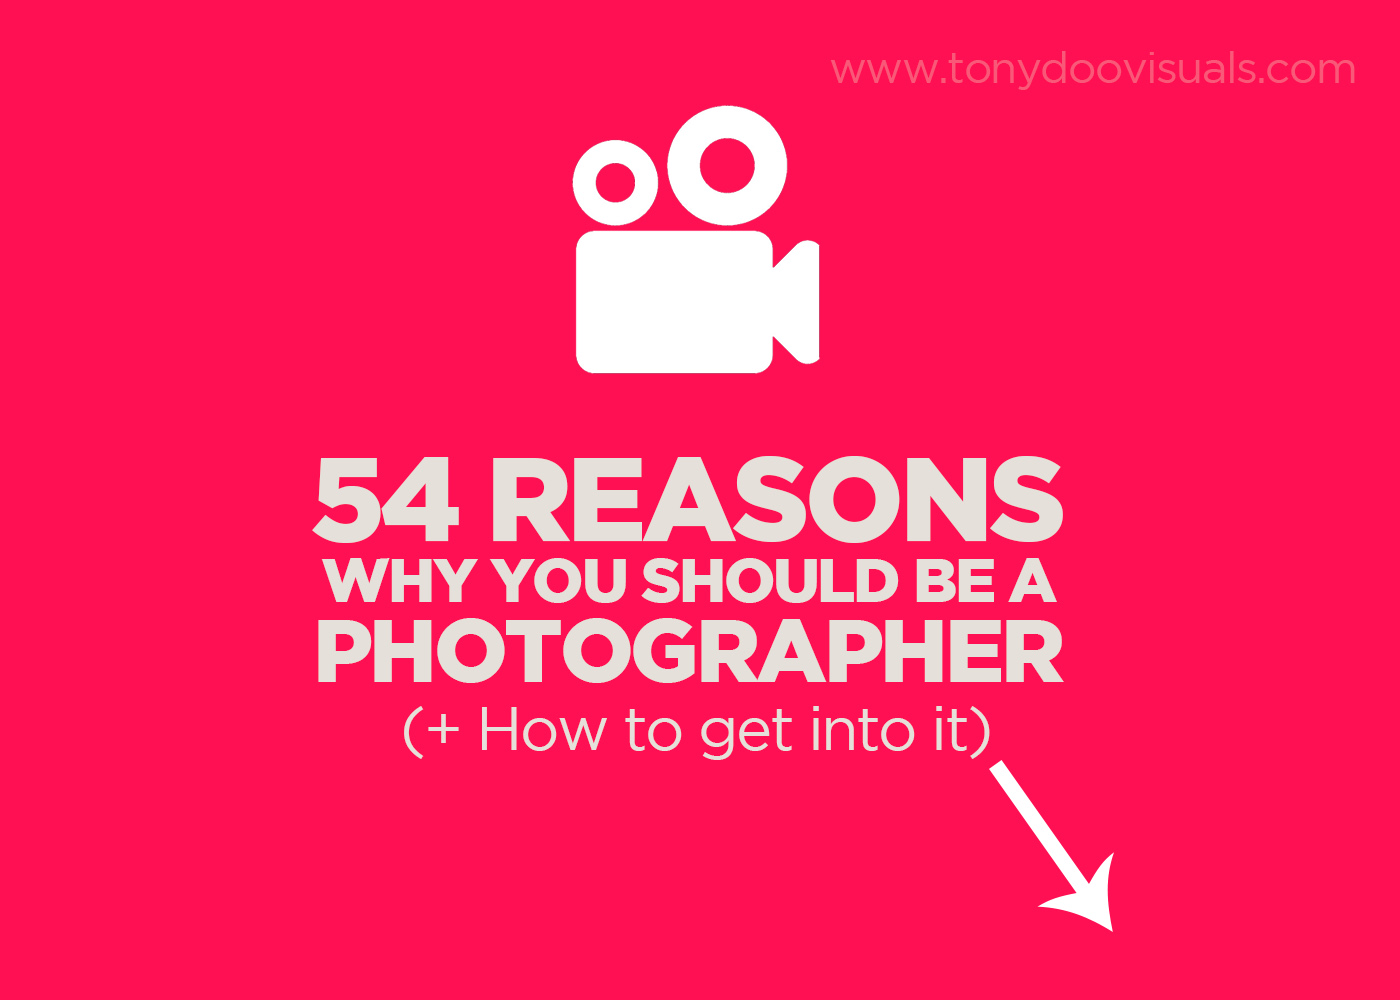 54-reasons-why-you-should-be-a-photographer-and-how-to-get-into-it-tonydoo-visuals